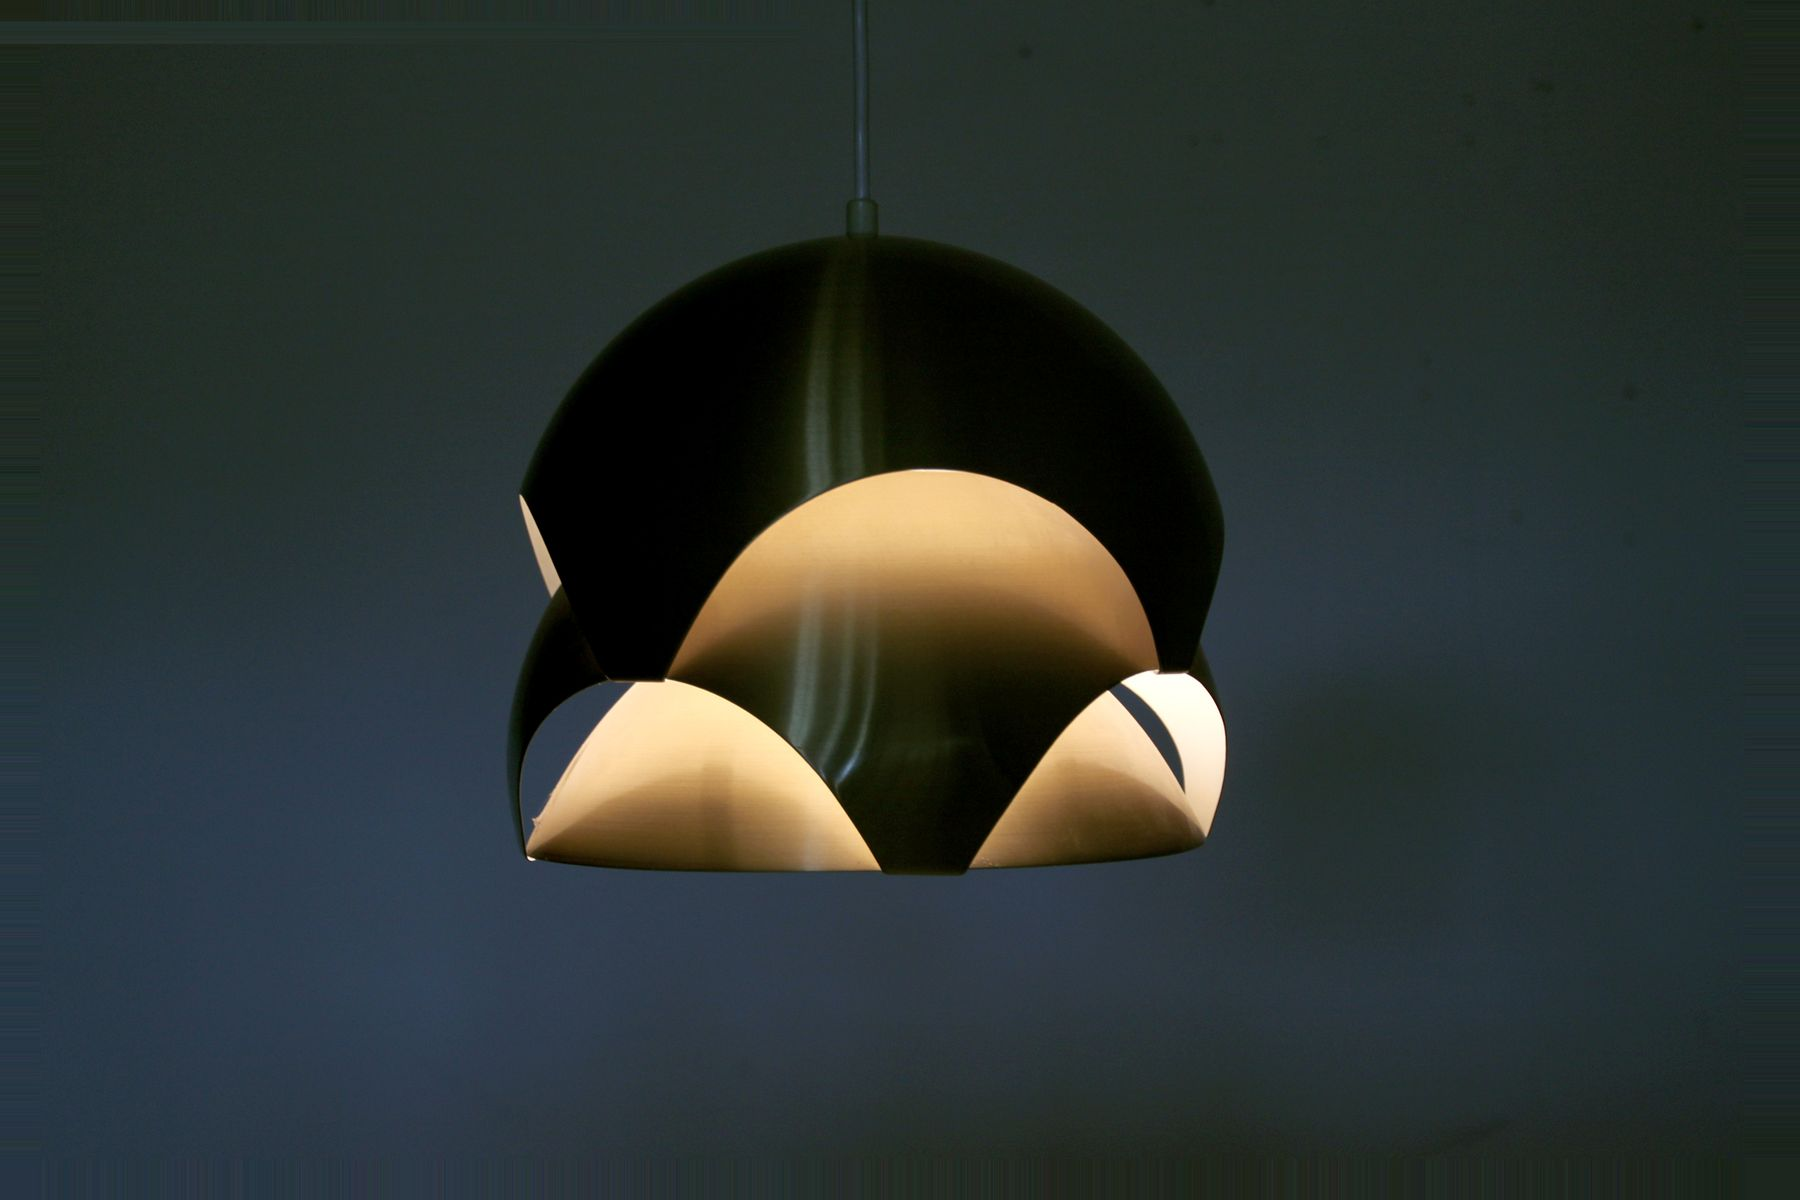 S 14075 Cone Pendulum Ceiling Light By Sven Ivar Dysthe